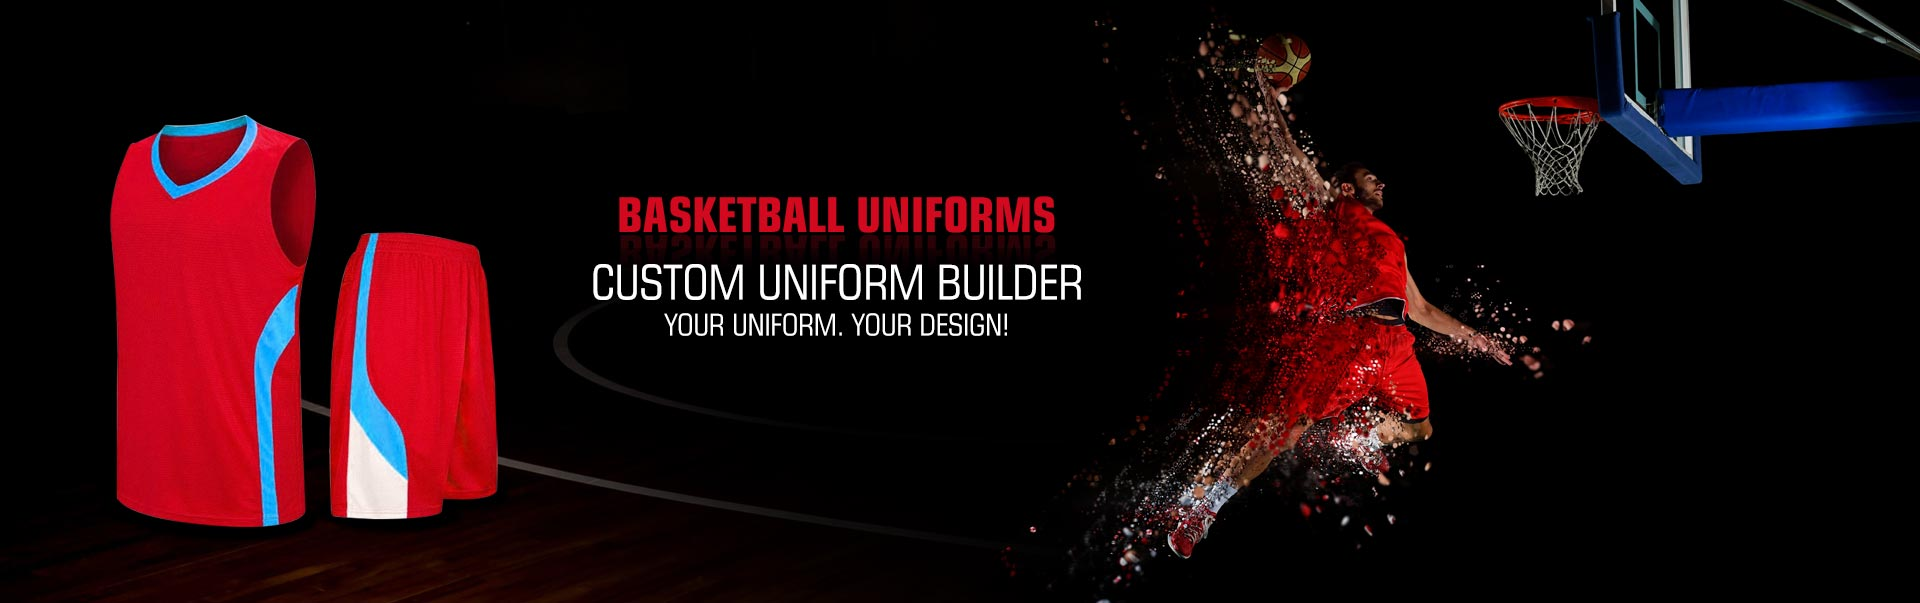 Basketball Uniforms Wholesaler, Suppliers in Ely